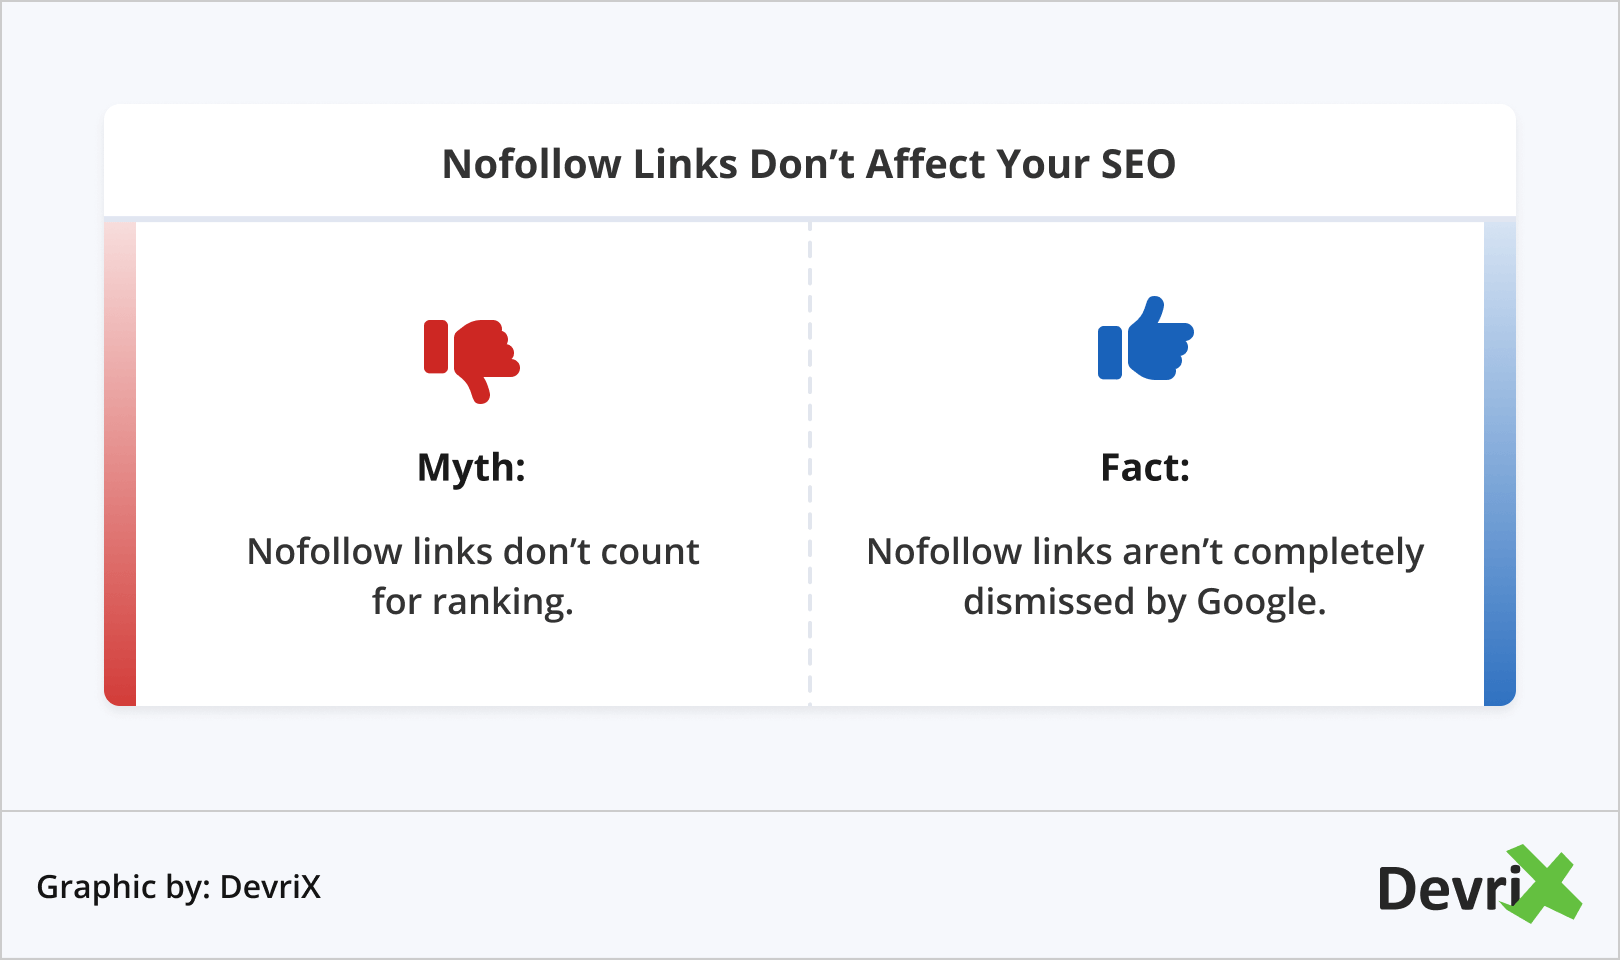 Nofollow Links Don't Affect Your SEO